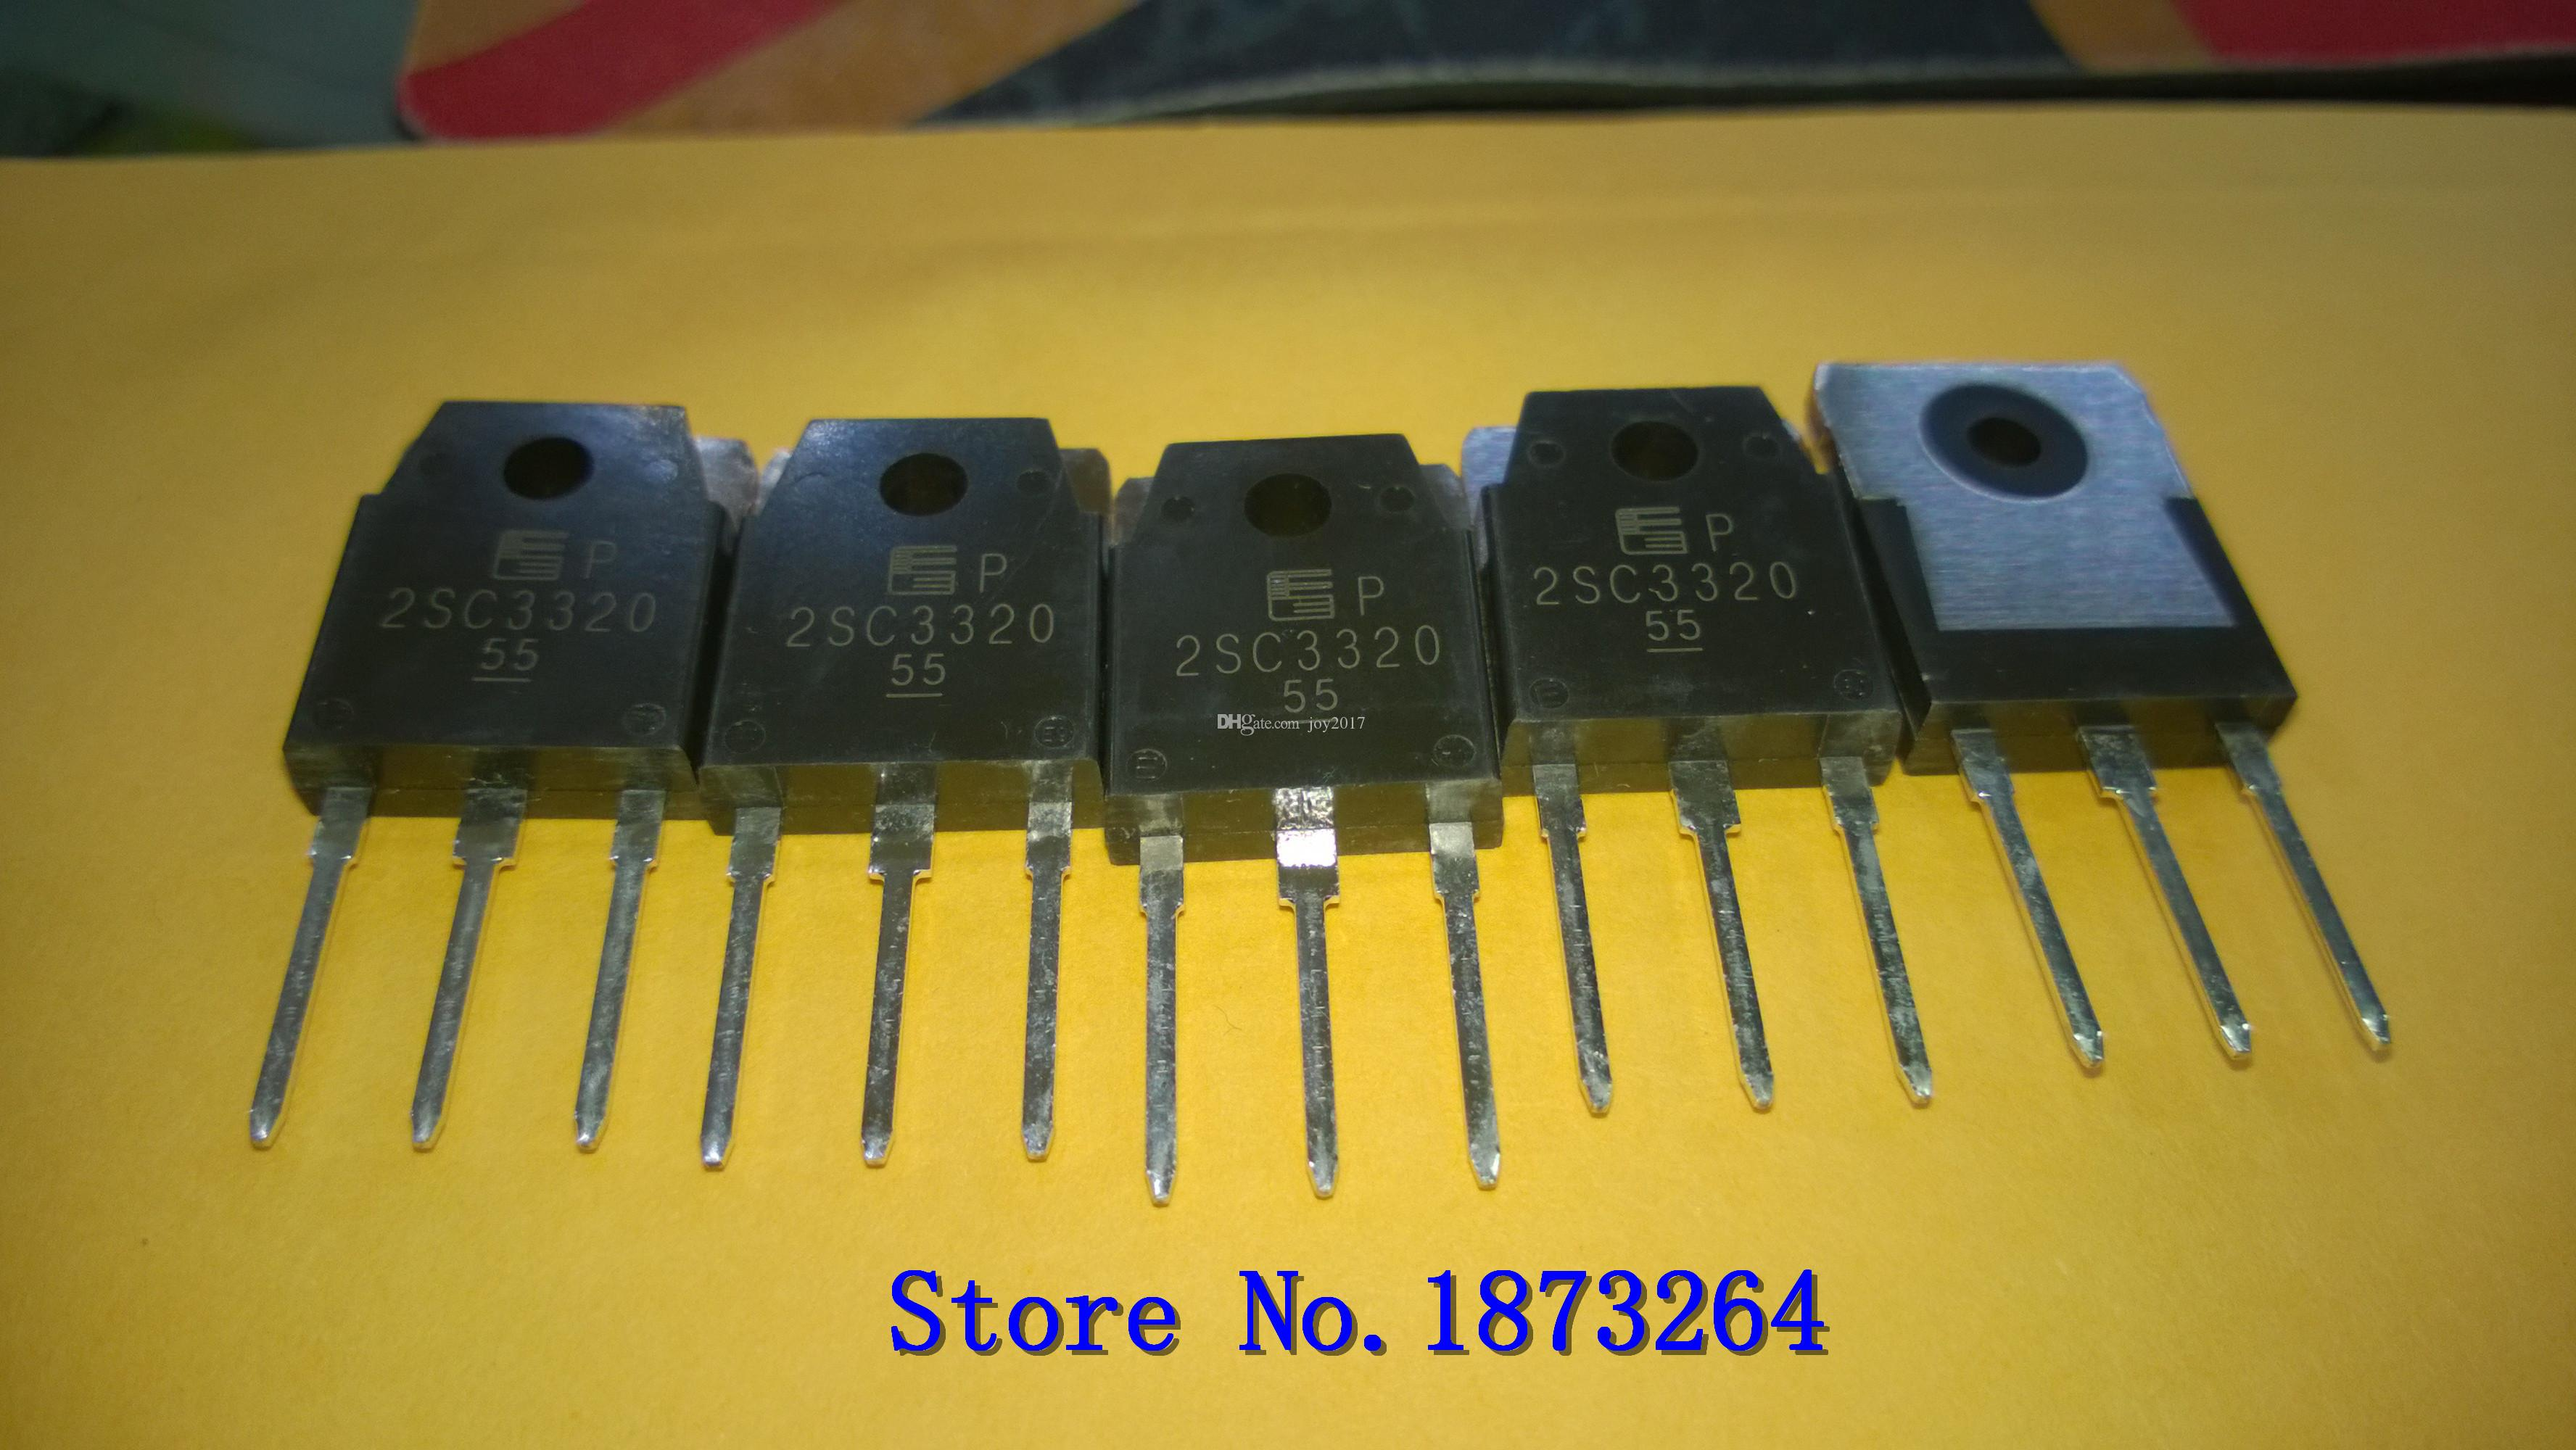 2sc3320 C3320 To 3p New And Original Online With Fr207 10 Pcs 1543 Piece On Joy2017s Store